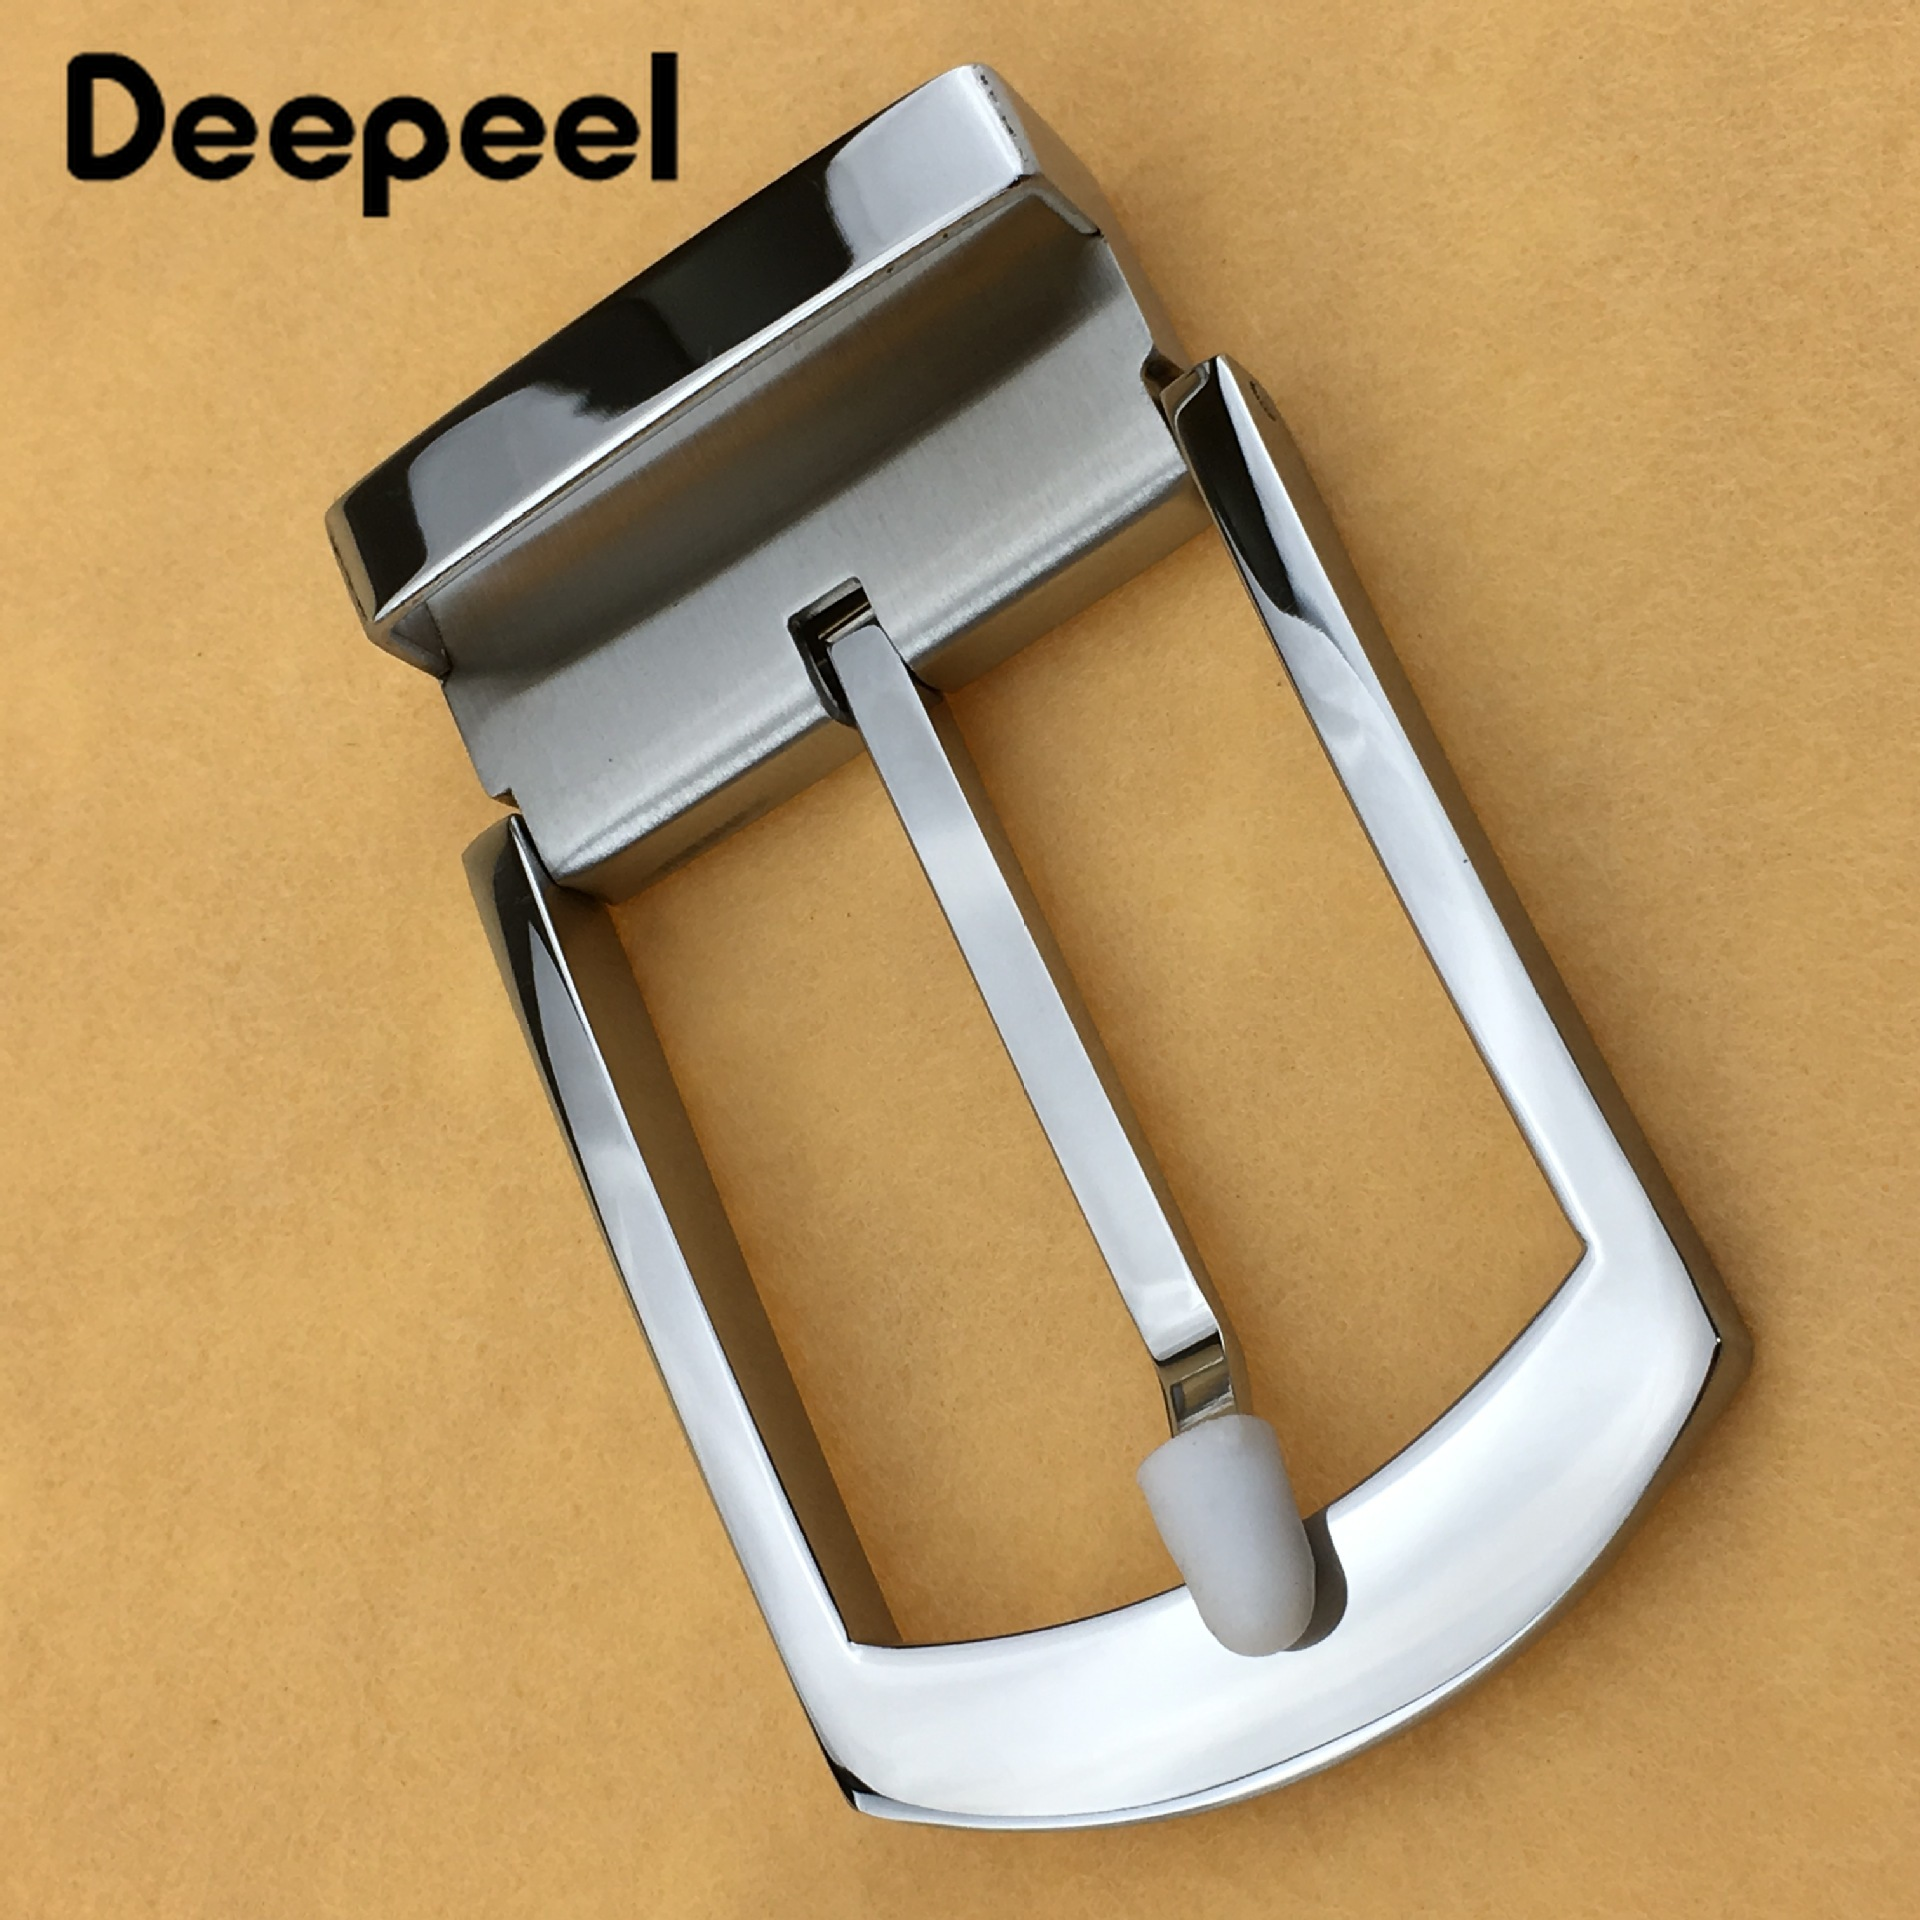 Deepeel 1pc Wide 40mm Men's Stainless Steel Pin Buckle High Quality Belt Buckle Accessories For Men Detachable Buckle YK763